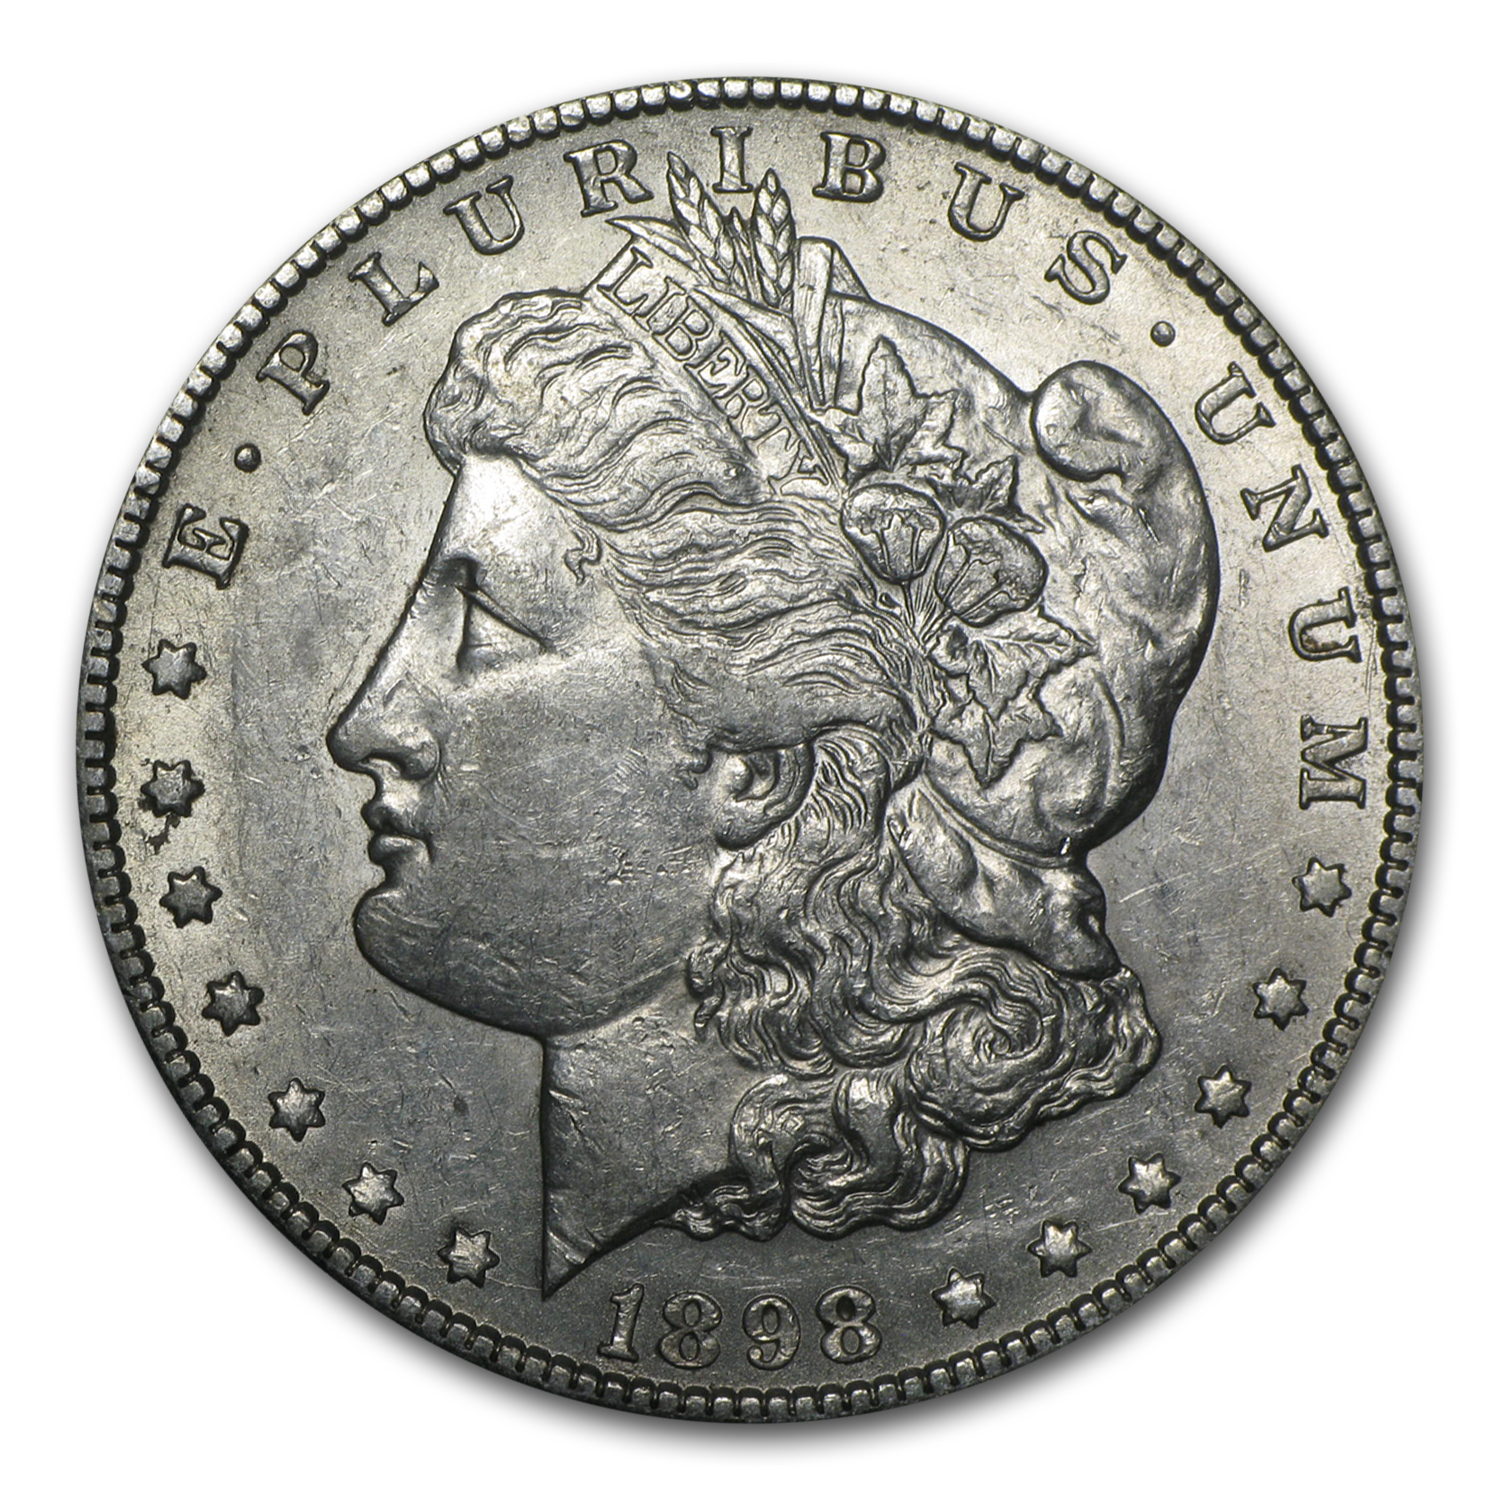 1898-S Morgan Dollar - Almost Uncirculated